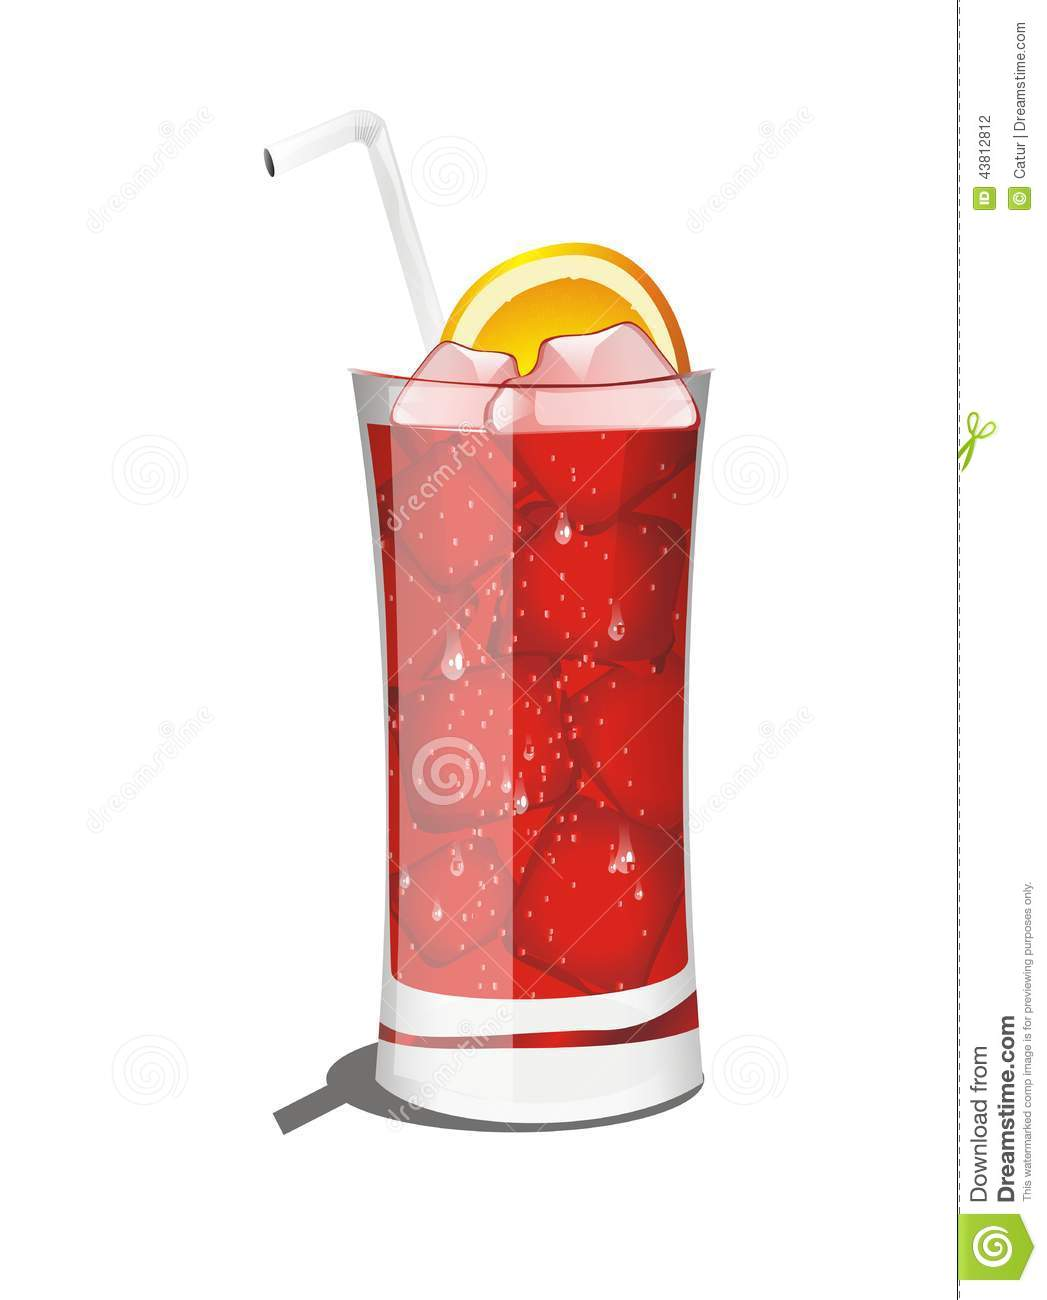 Realistic Vector Red Cocktail Drink Stock Vector - Image: 43812812